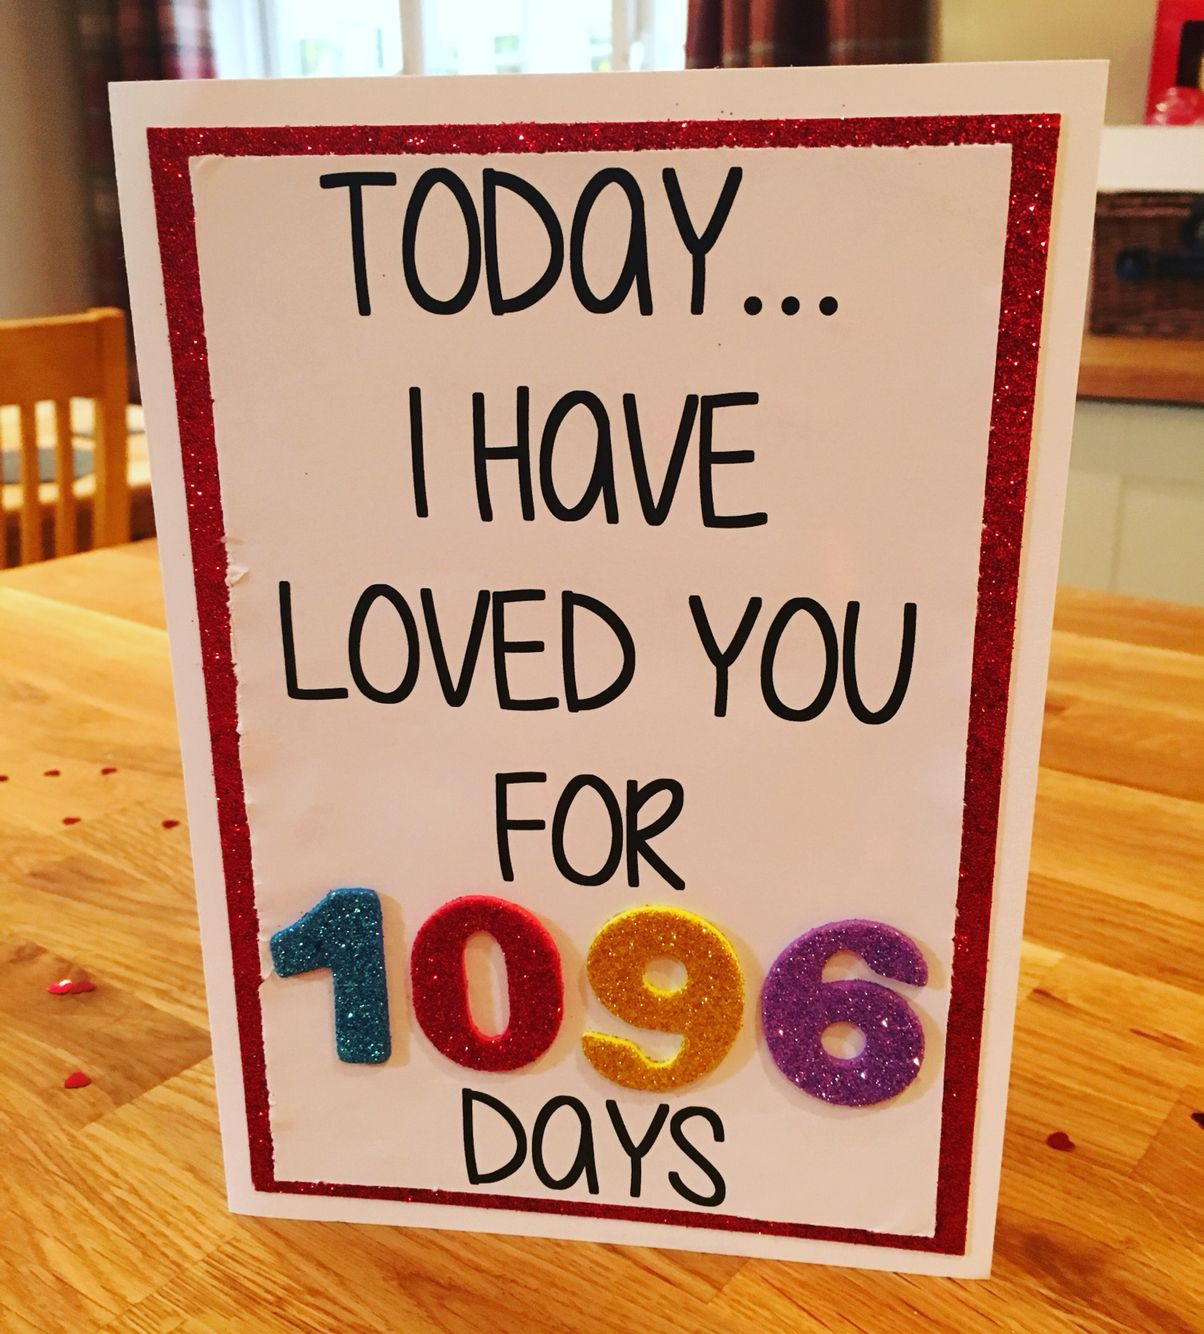 3 year anniversary card. Today I have loved you for 1096